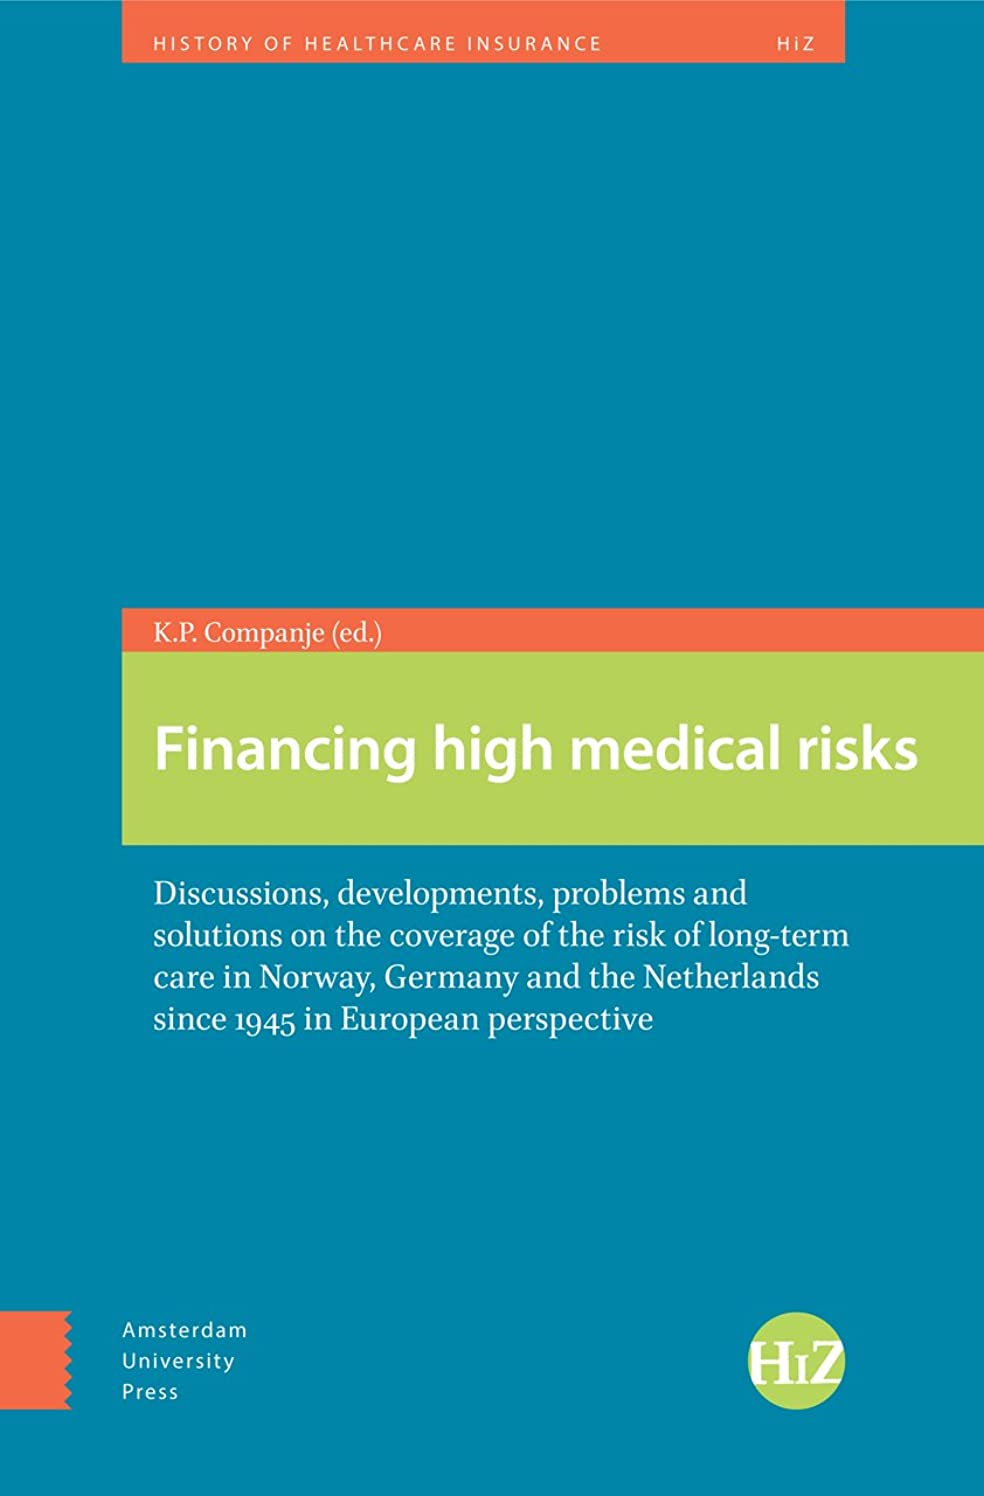 Financing High Medical Risks: Discussions, Developments, Problems and Solutions on the Coverage of the Risk of Long-term Care in Norway, Germany and ... Perspective (History of Healthcare Insurance)